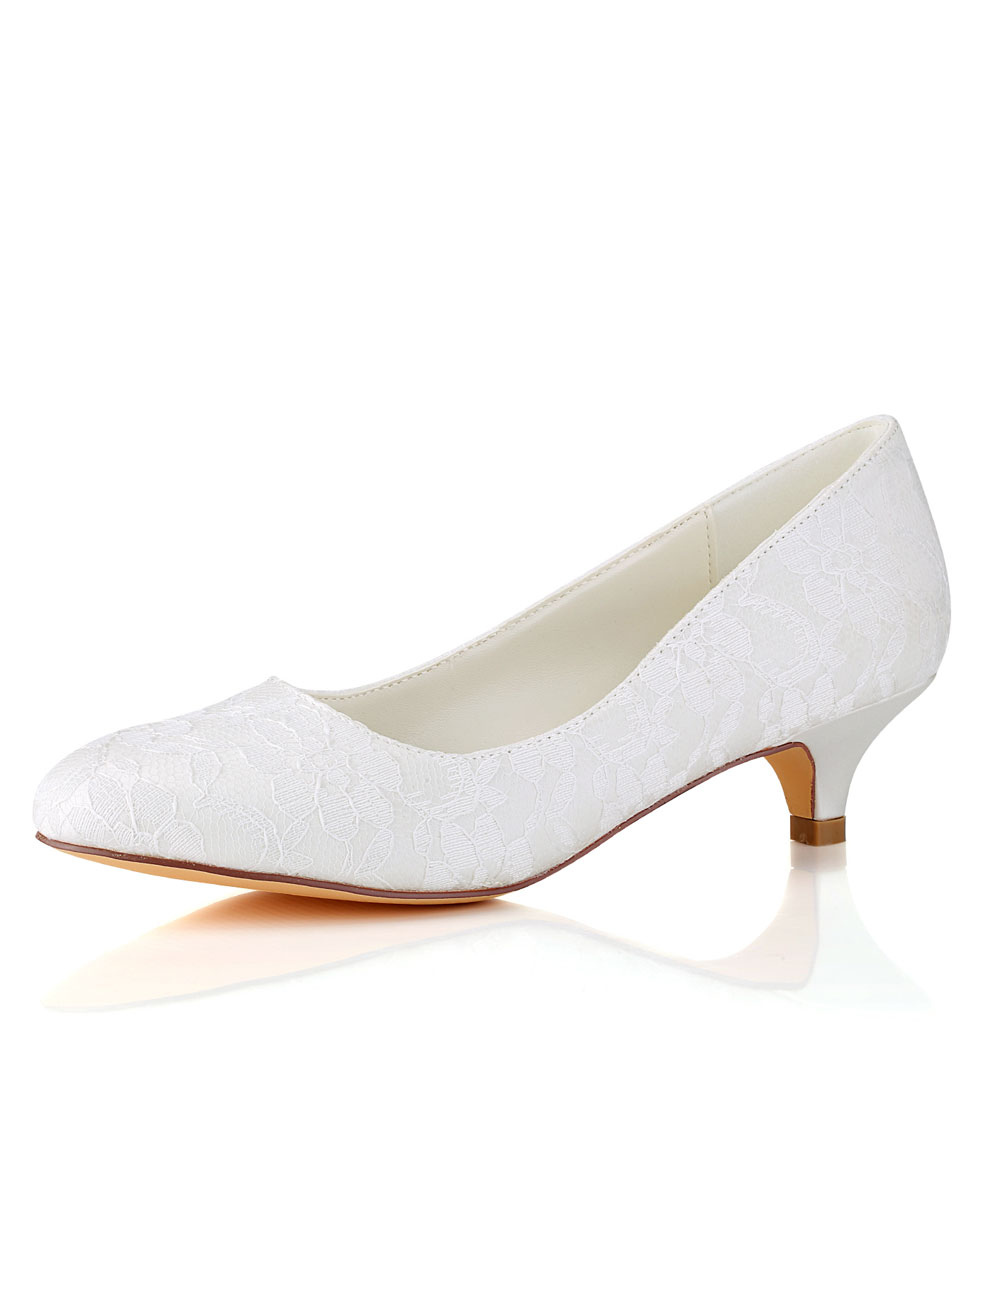 Lace Mother Shoes Round Toe Wedding